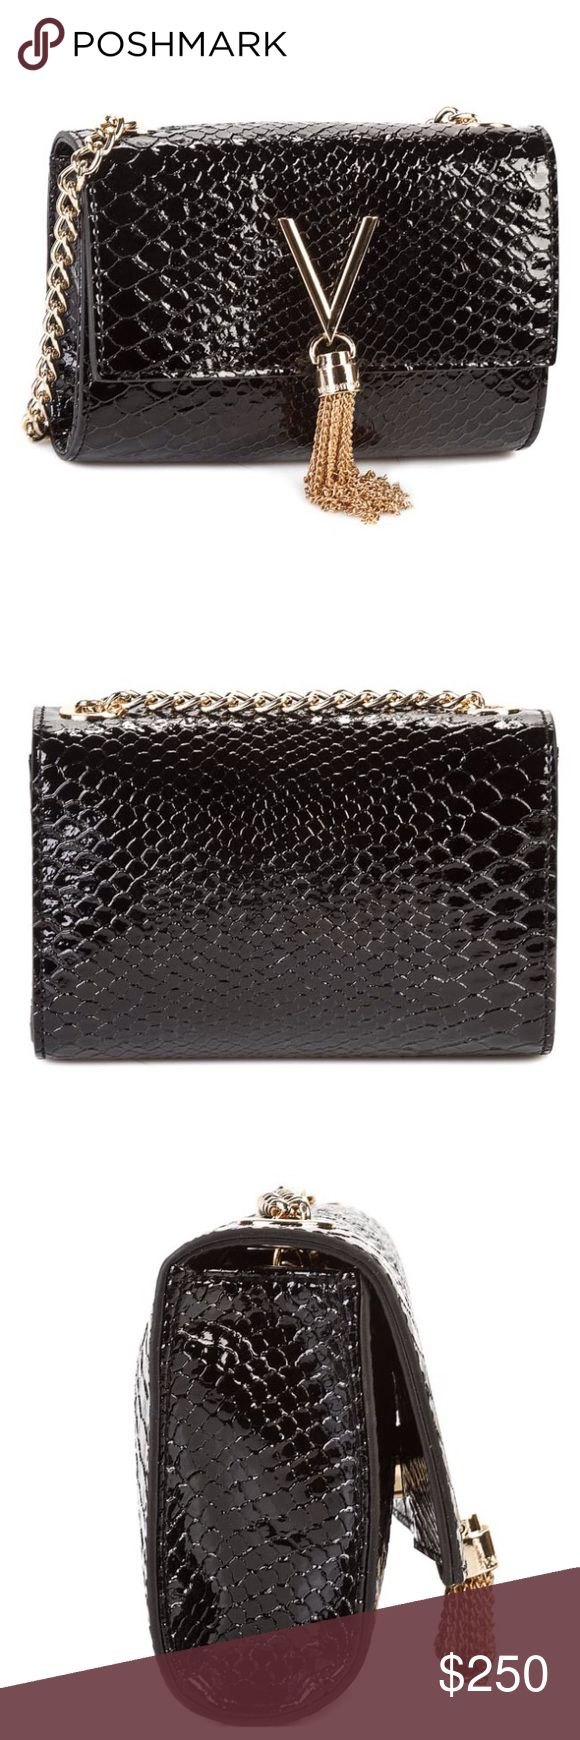 """Mario Valentino evening Bag Purse croc black gold Stunning Mario Valentino bag! Black croc patent leather with nice weighted gold tone hard wear. 6.5"""" Long 5"""" tall 24"""" strap drop strap is removable. Has tags. Mario Valentino Bags Mini Bags"""